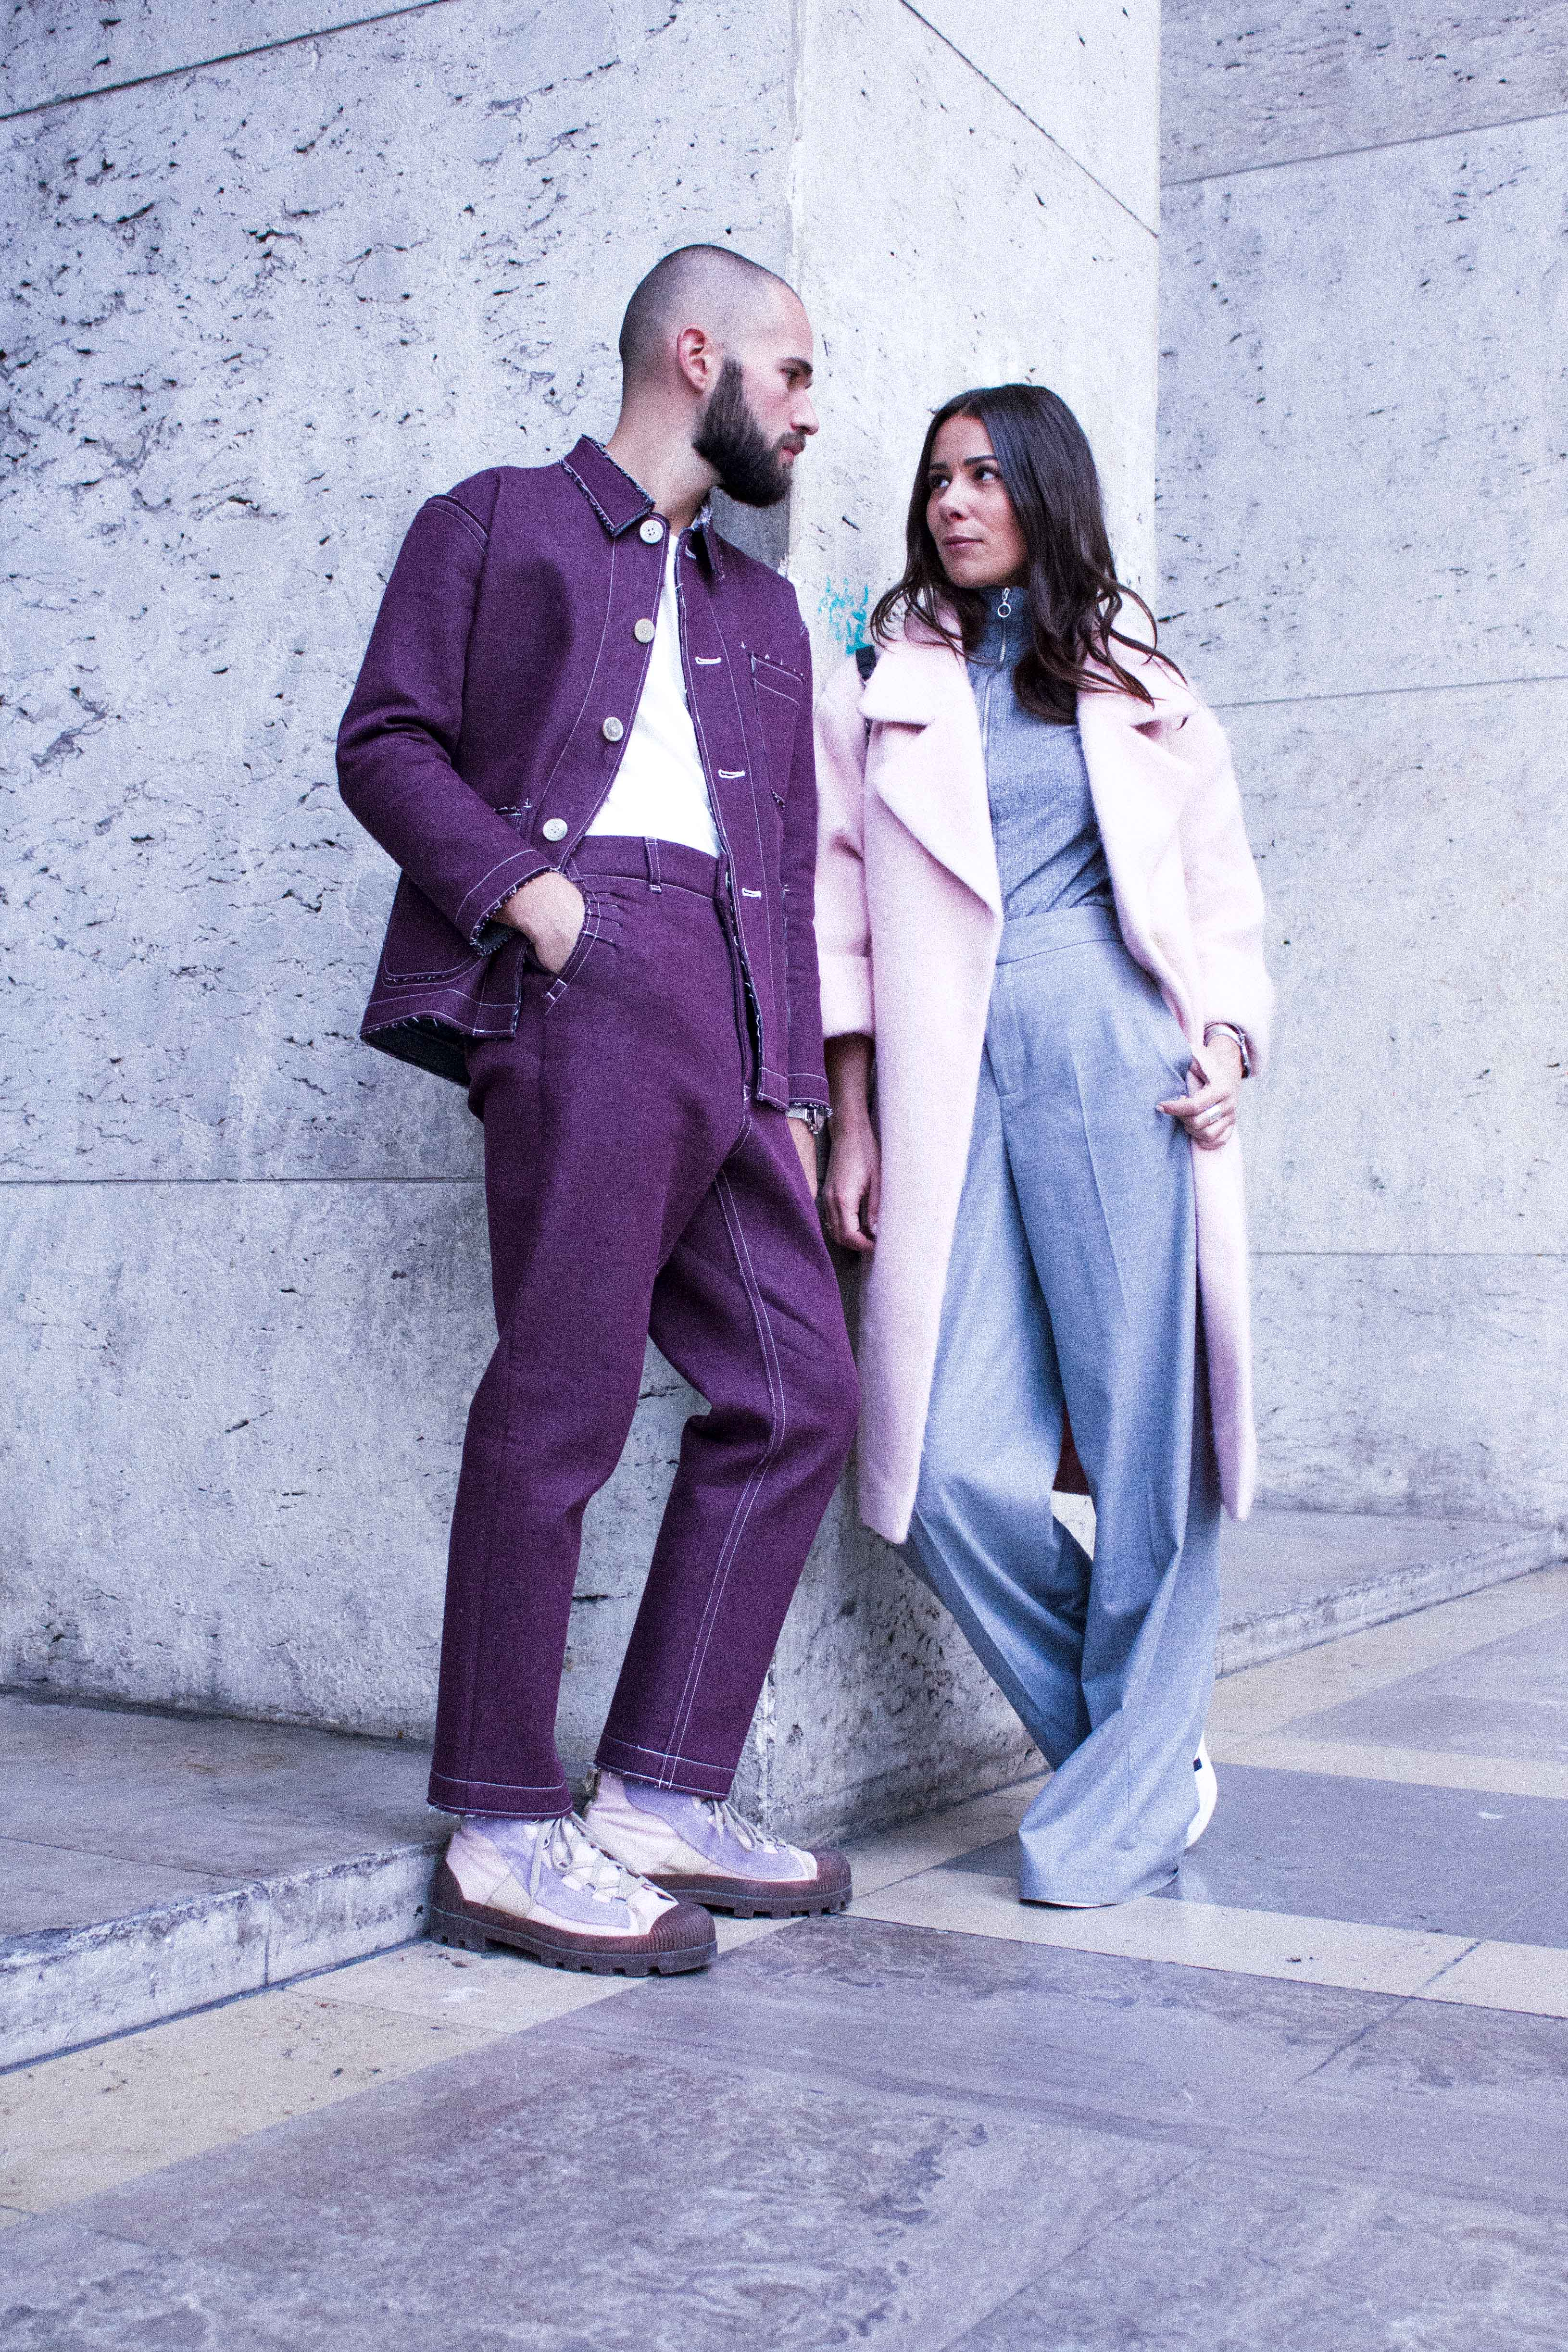 fashion-couple-jaimetoutcheztoi-alice-js-blog-mode-20